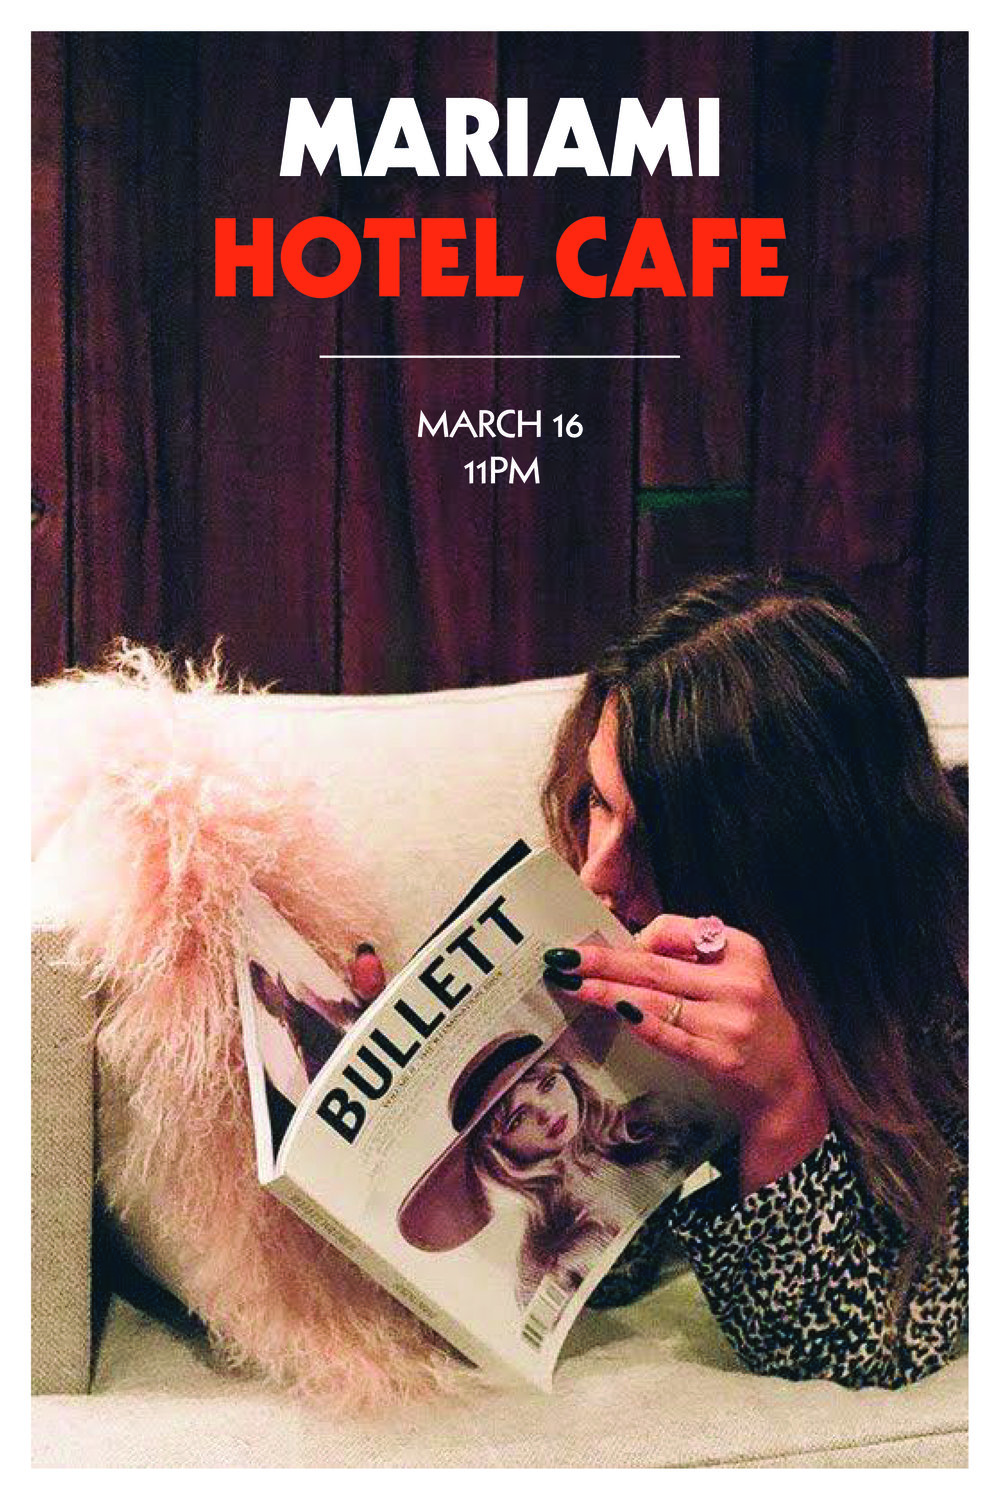 MARIAMI LIVE AT HOTEL CAFE - MARCH 16